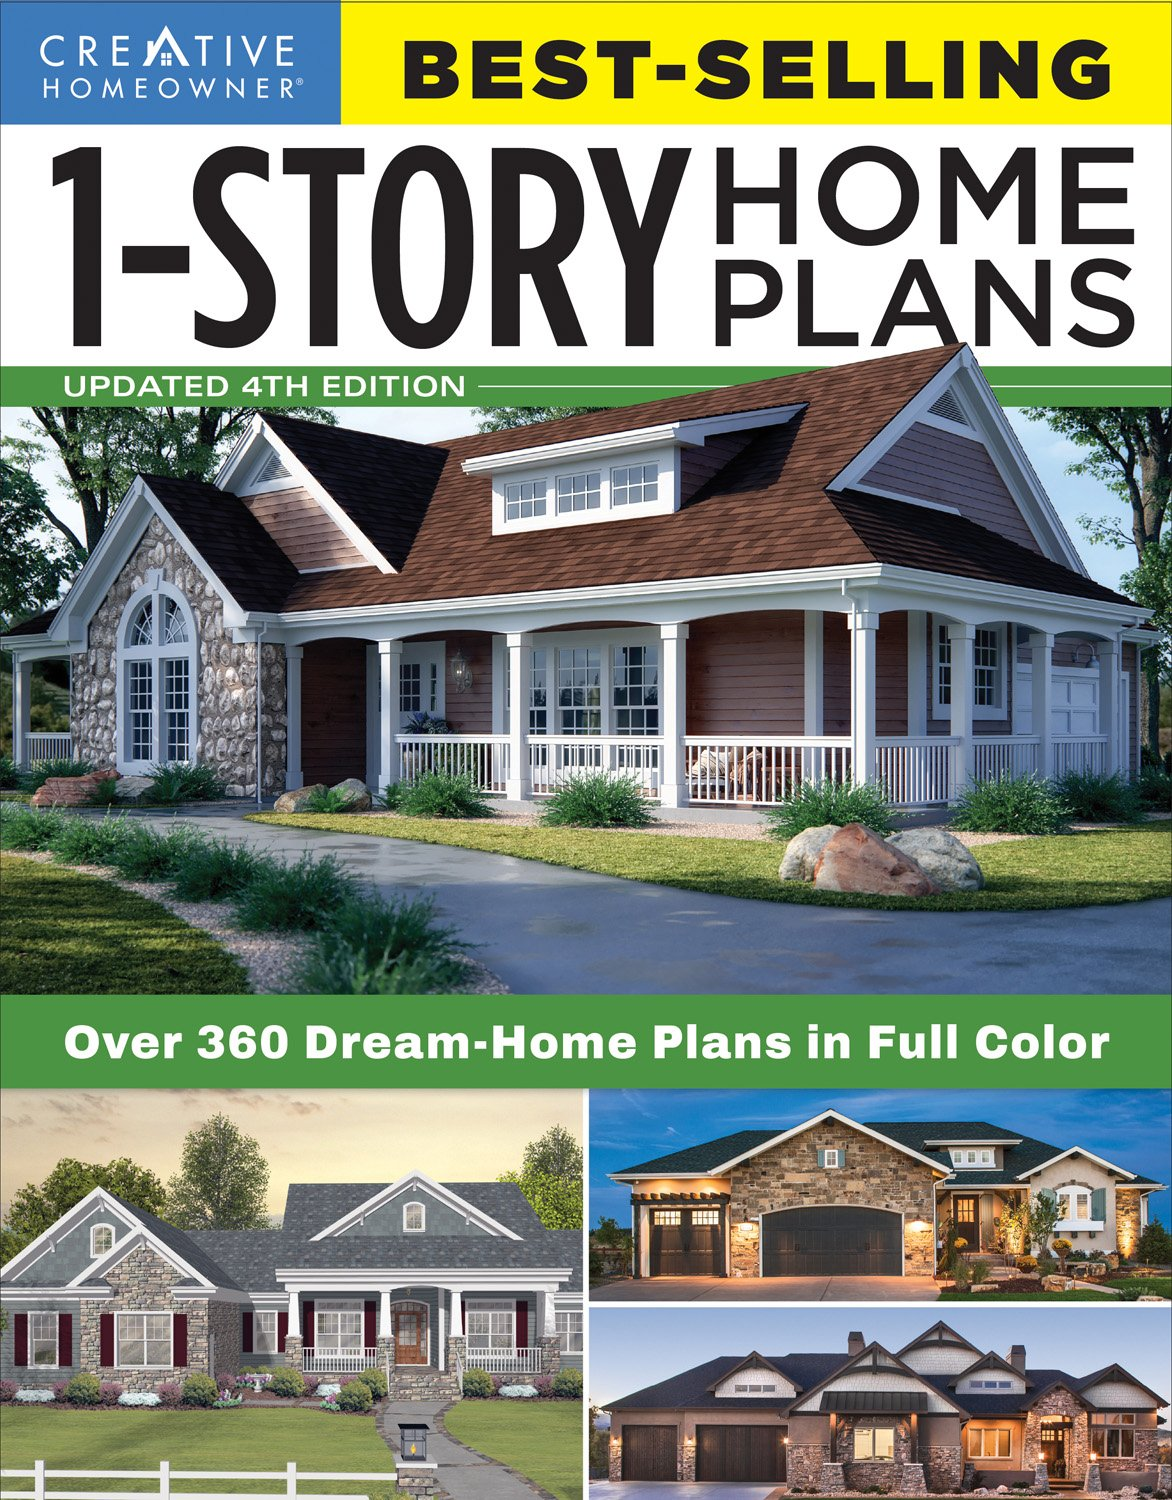 Best Selling 1 Story Home Plans Updated 4th Edition Over 360 Dream